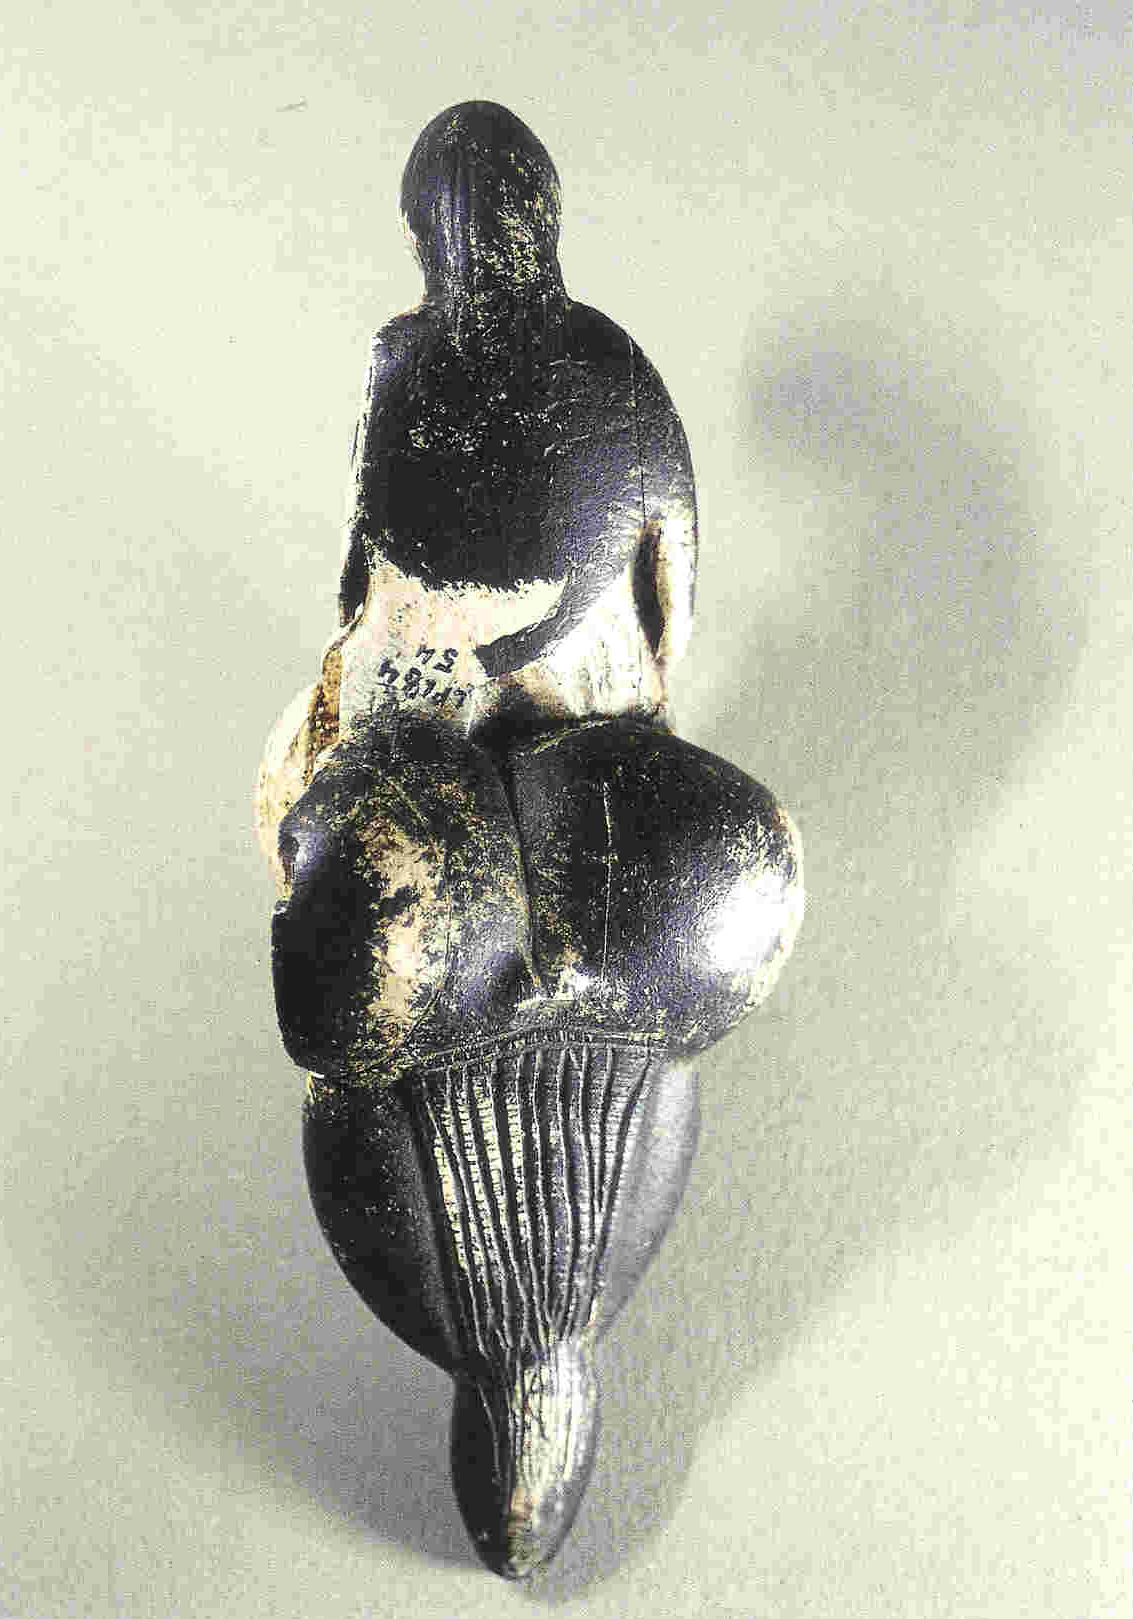 Venus van Lespugue. Achterkant. Uit de grot van Rideau, Haute-Garonne, Frankrijk 14,7 cm. Zwarte mammoettand. Thans in Musée des Antiquités Nationales, Saint-Germain-en-Laye.